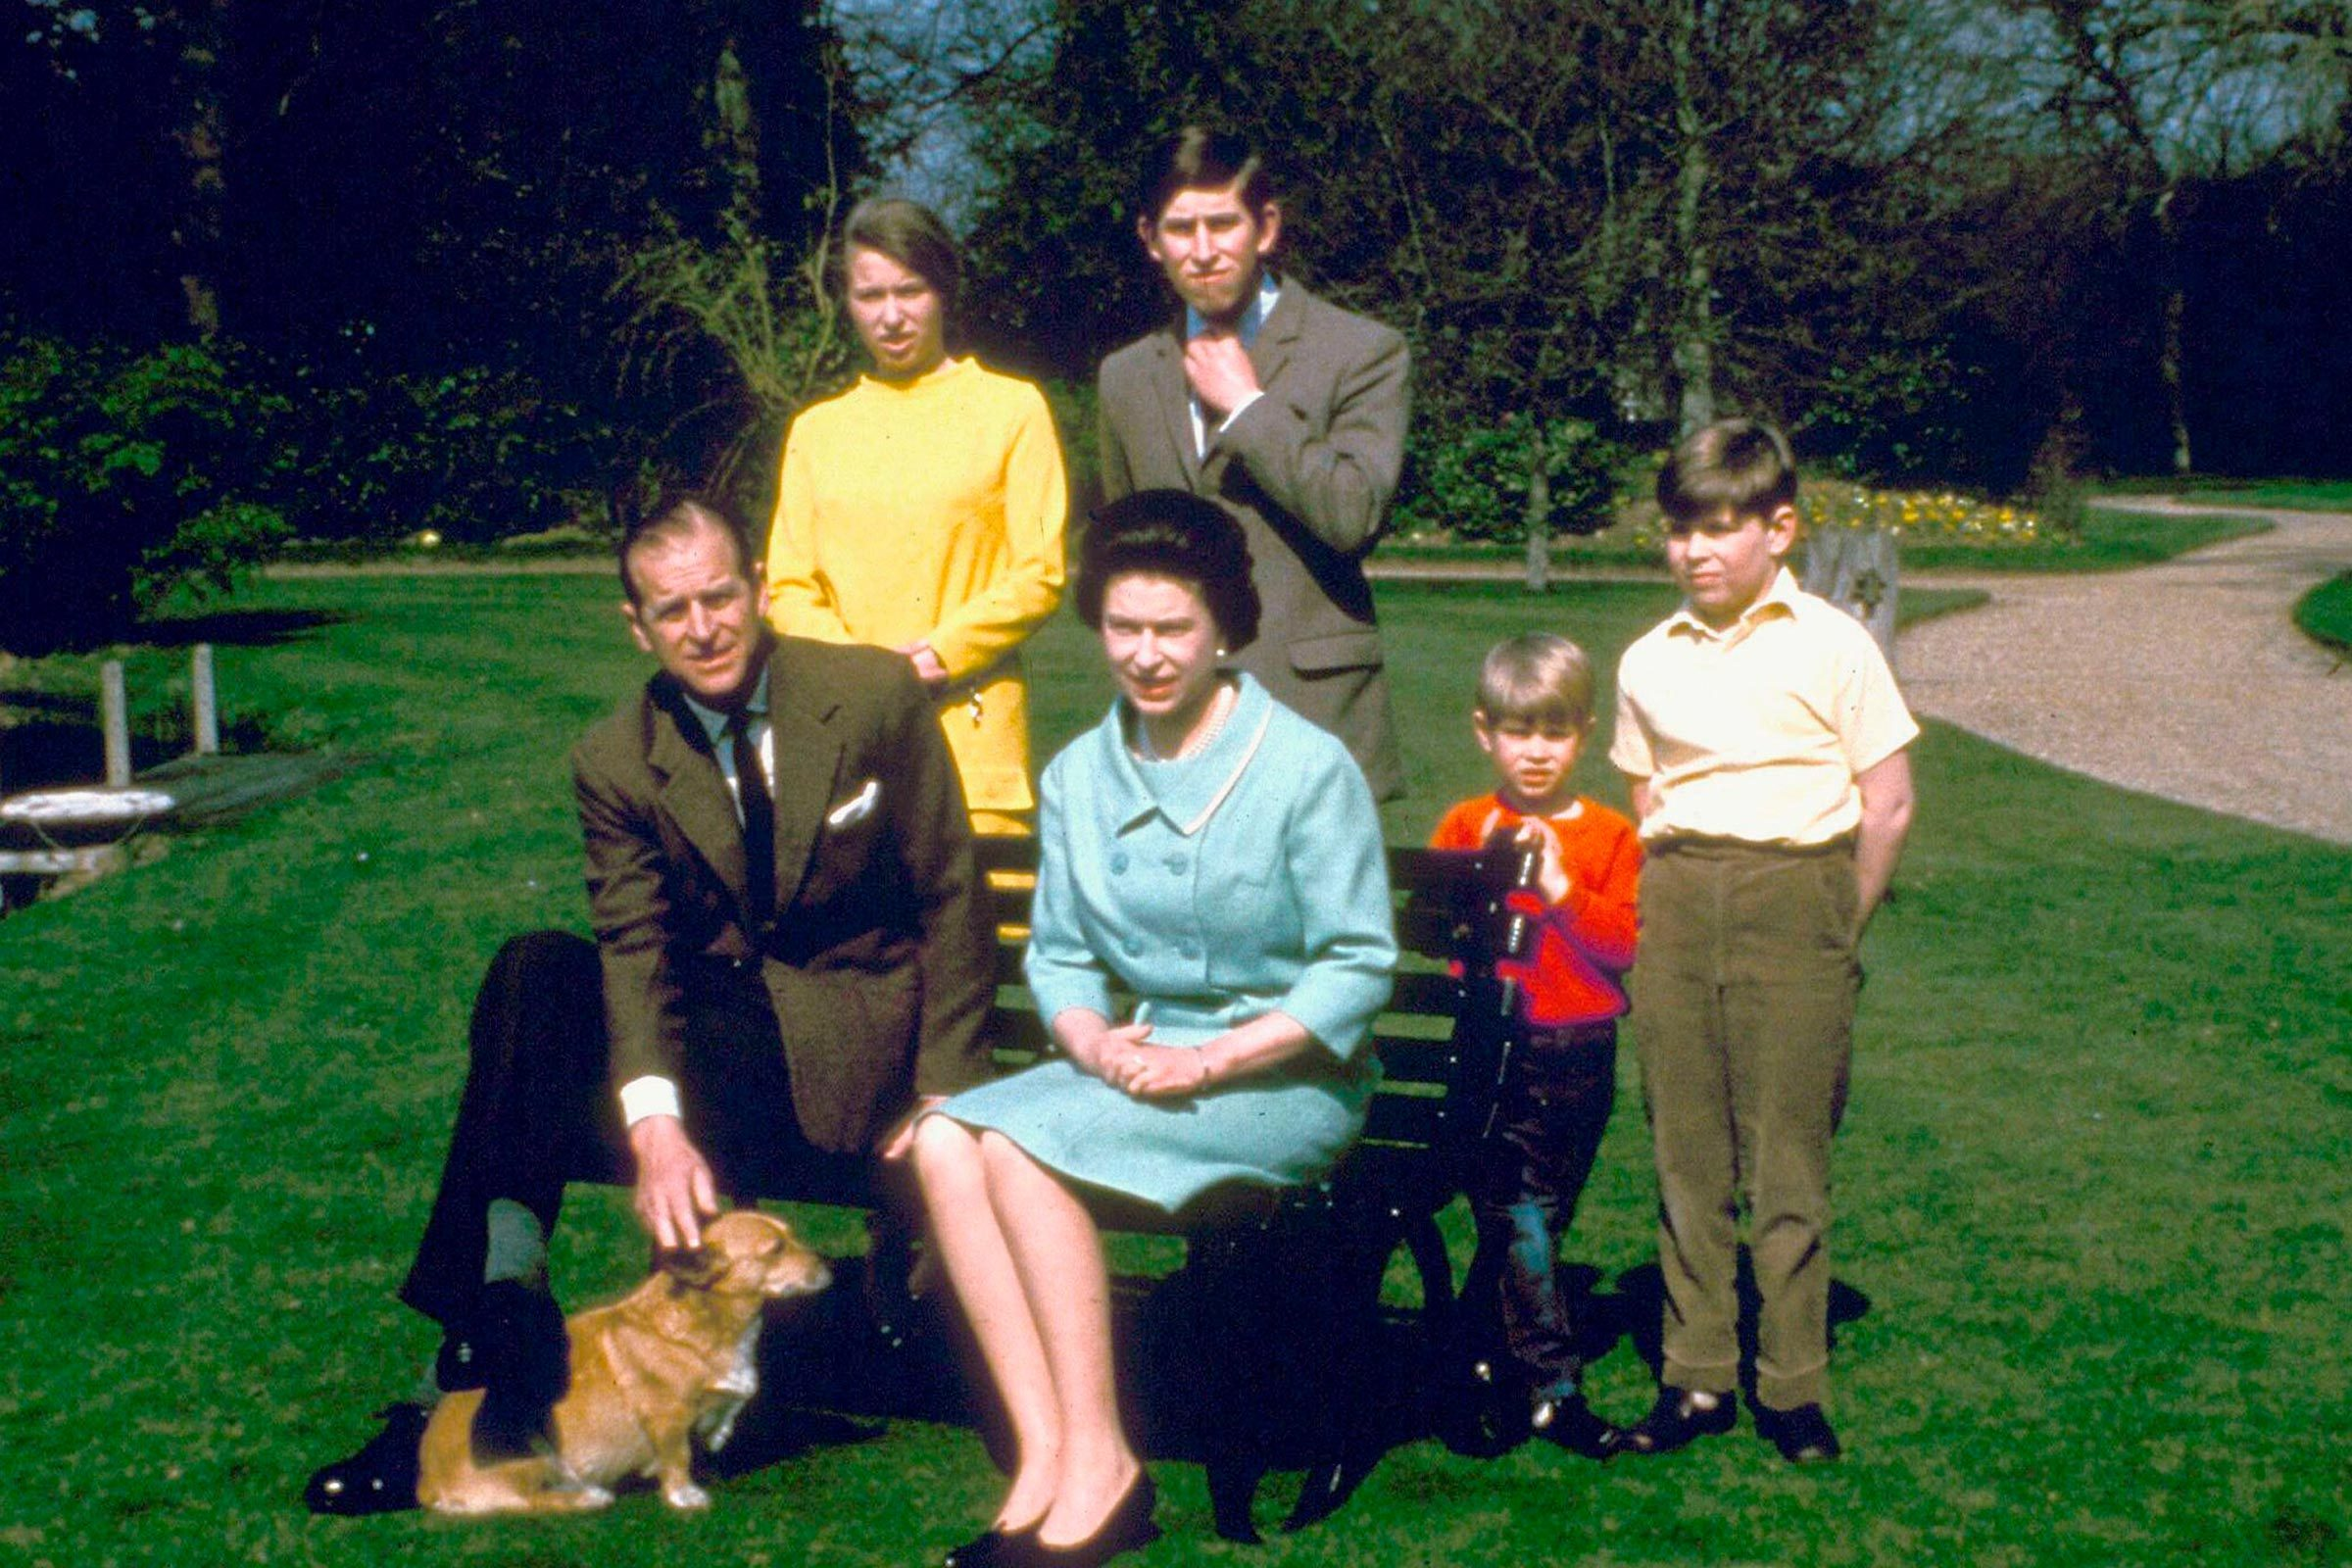 Queen Elizabeth II, Prince Philip, Princess Anne, Prince Charles, Prince Andrew